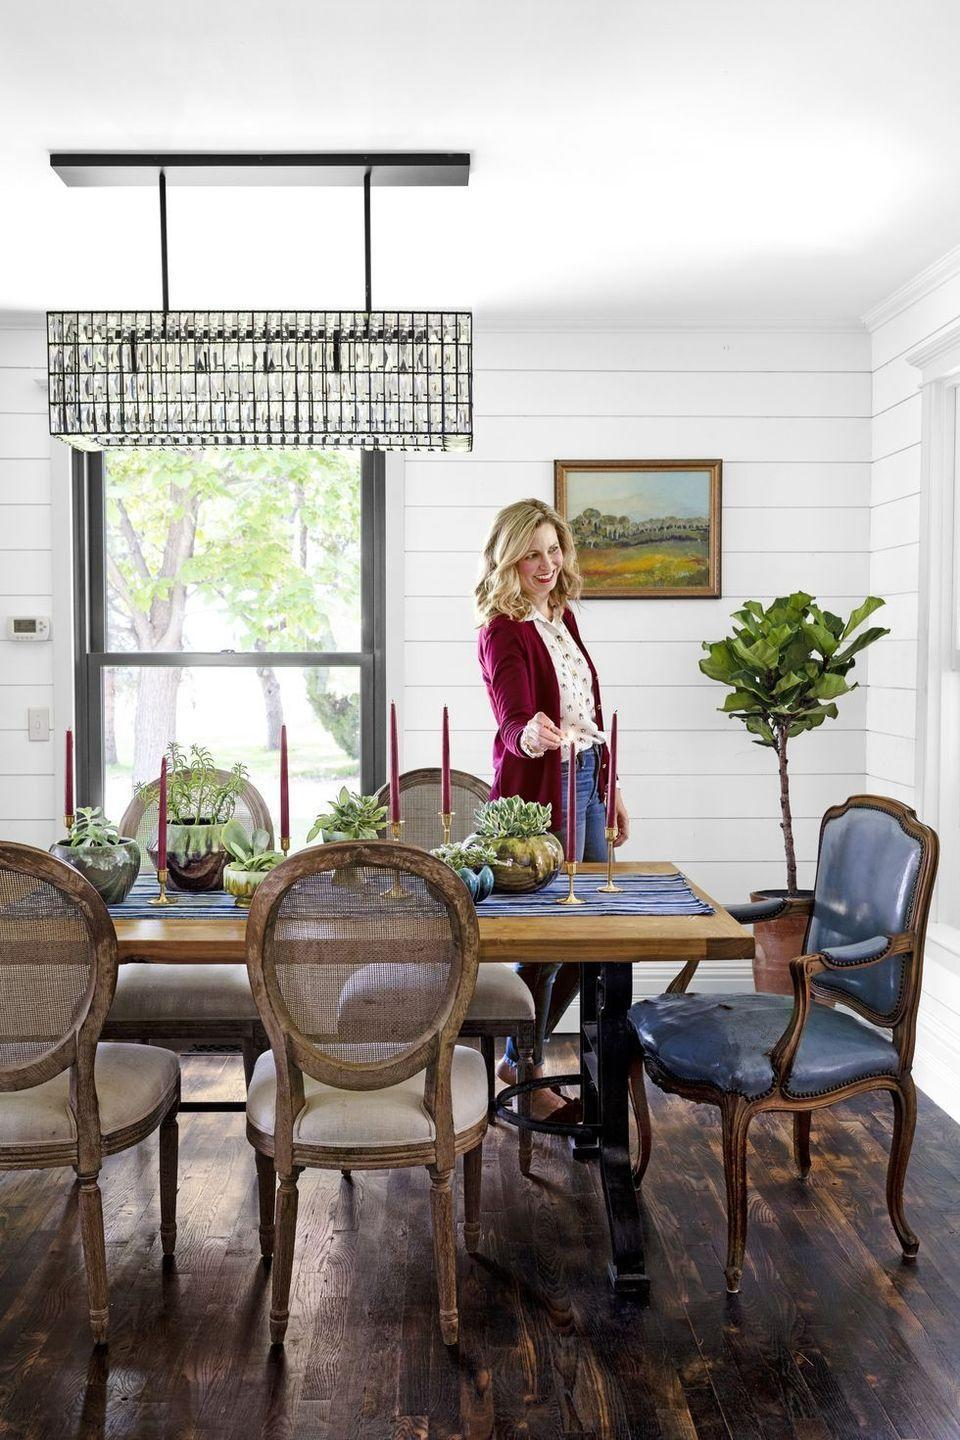 <p>You can never go wrong with a combination of greenery and candles, especially when you stick to autumn-inspired colors ranging from rich reds to greens.</p>